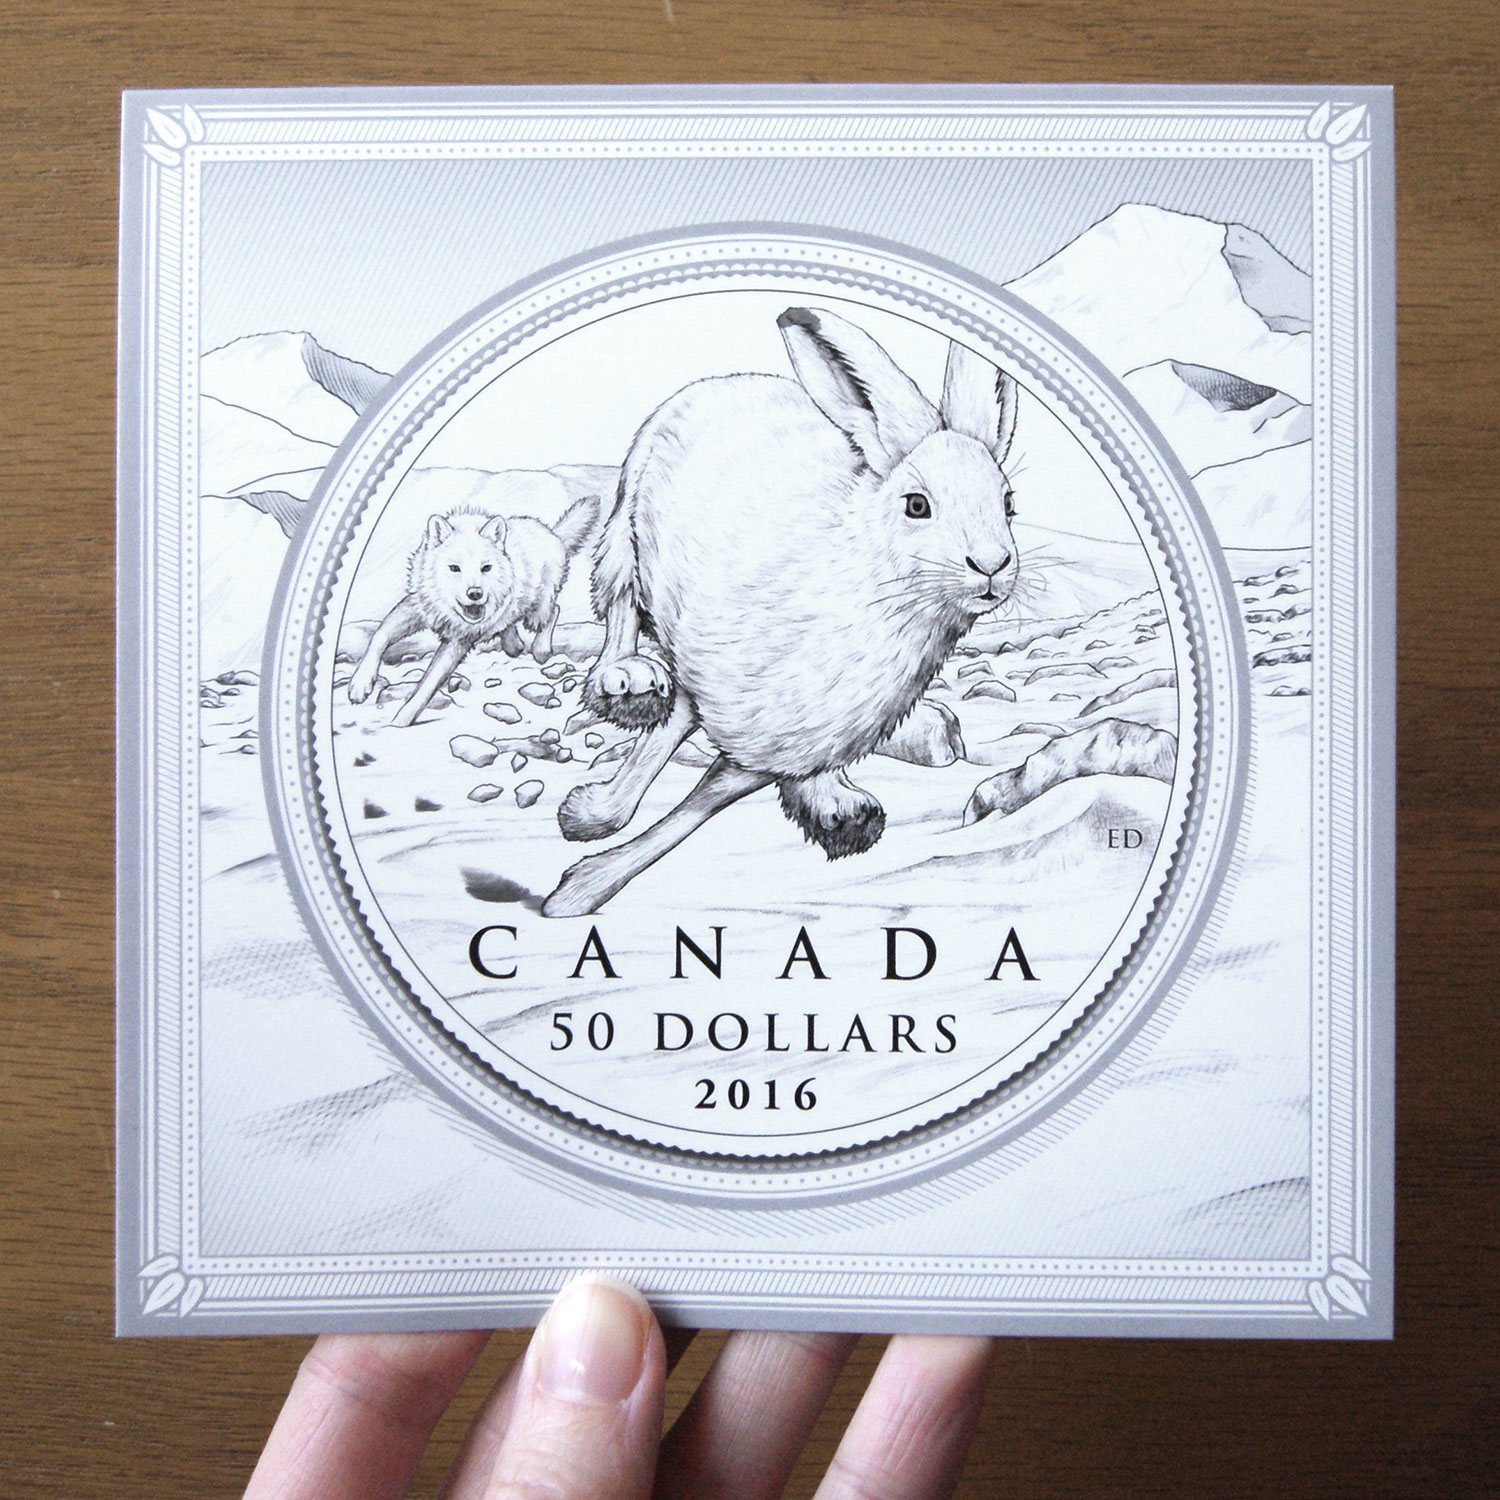 Arctic hare coin illustration by Emily damstra